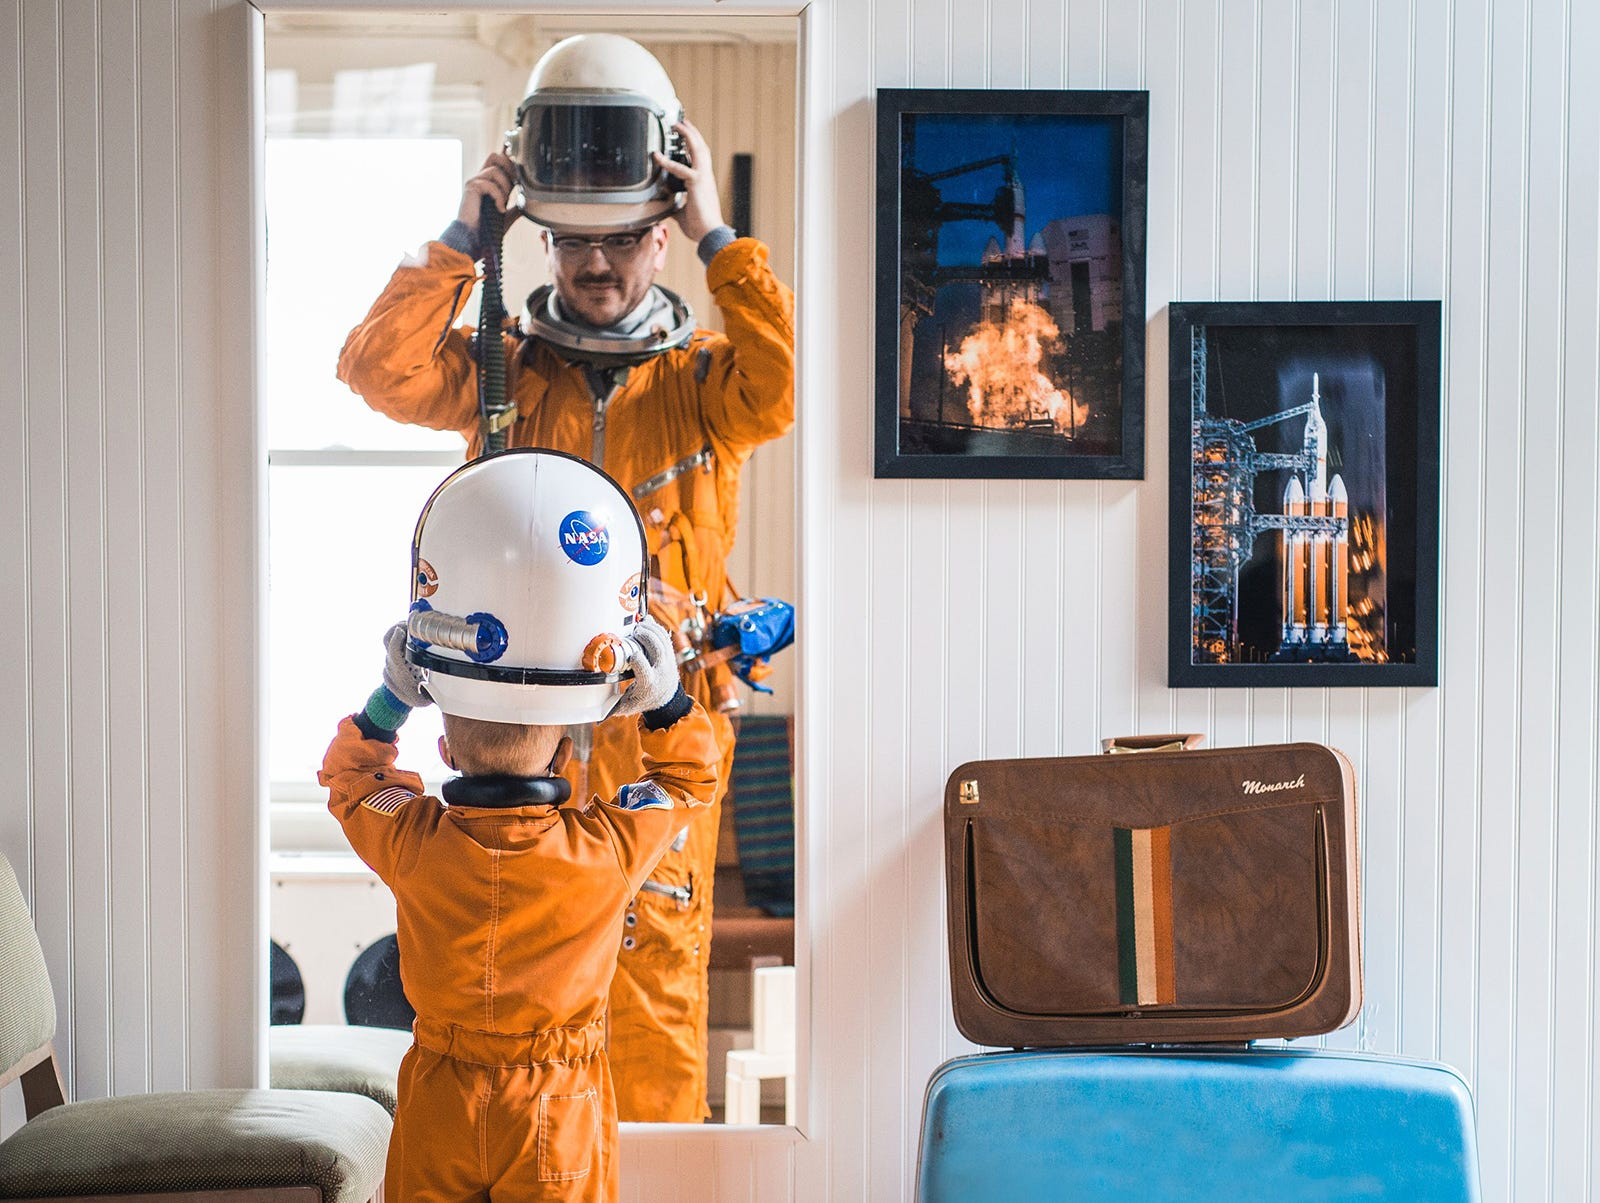 Spacesuit launches remarkable journey for Iowa photographer.